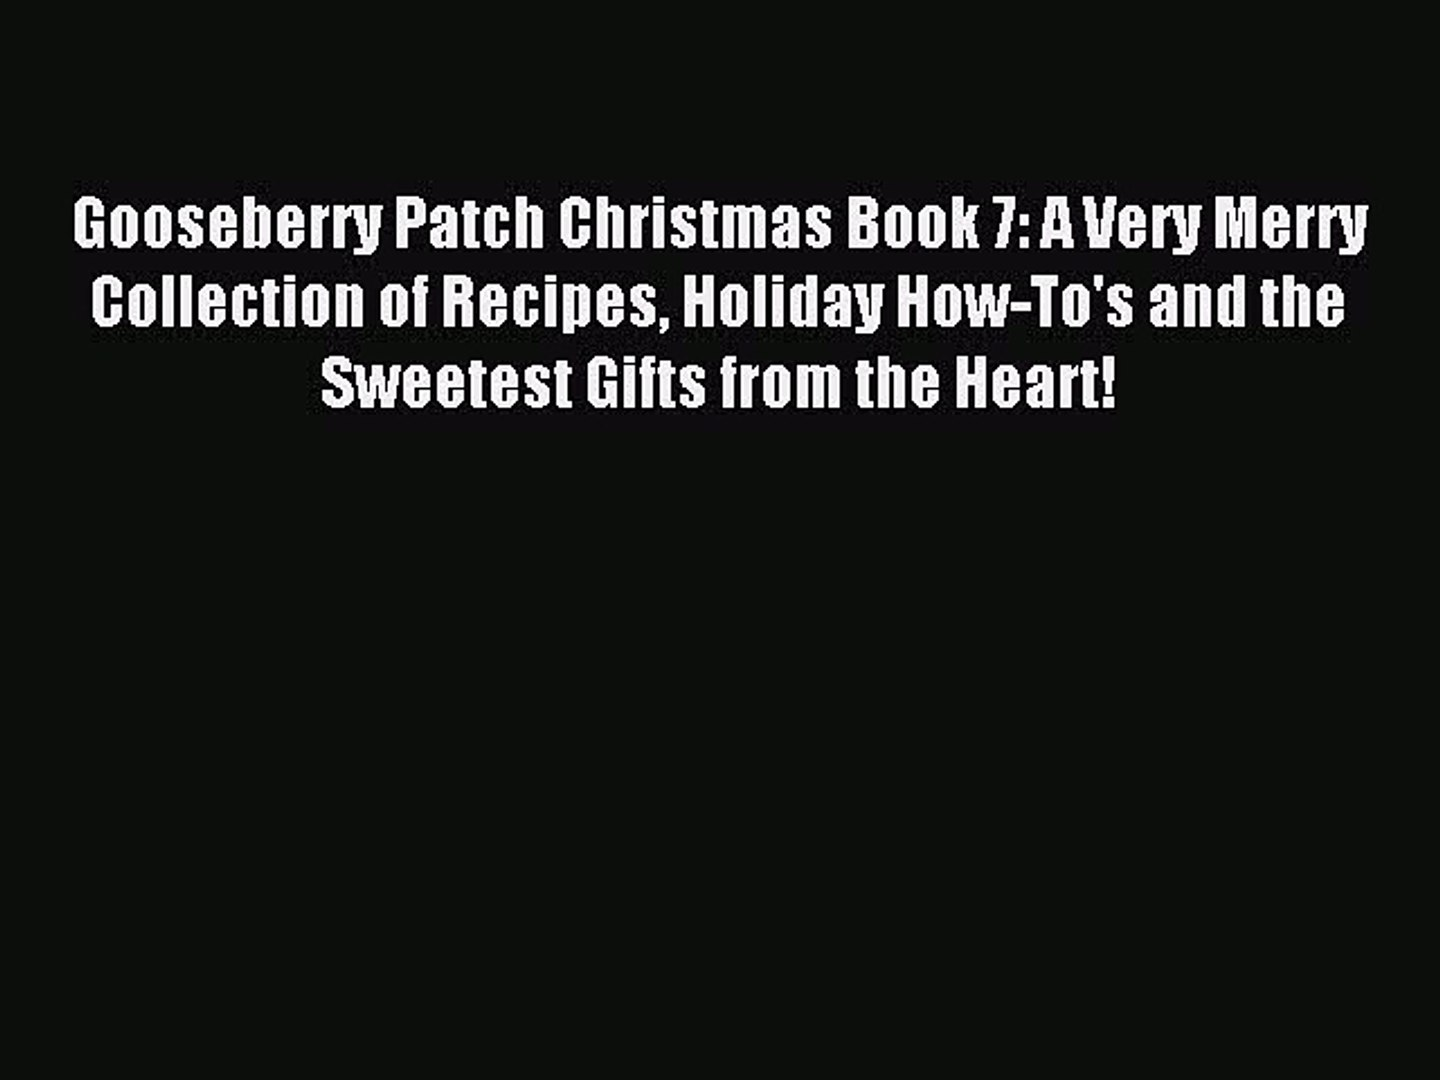 Gooseberry Patch Christmas Book 7: A Very Merry Collection of Recipes Holiday How-To's and